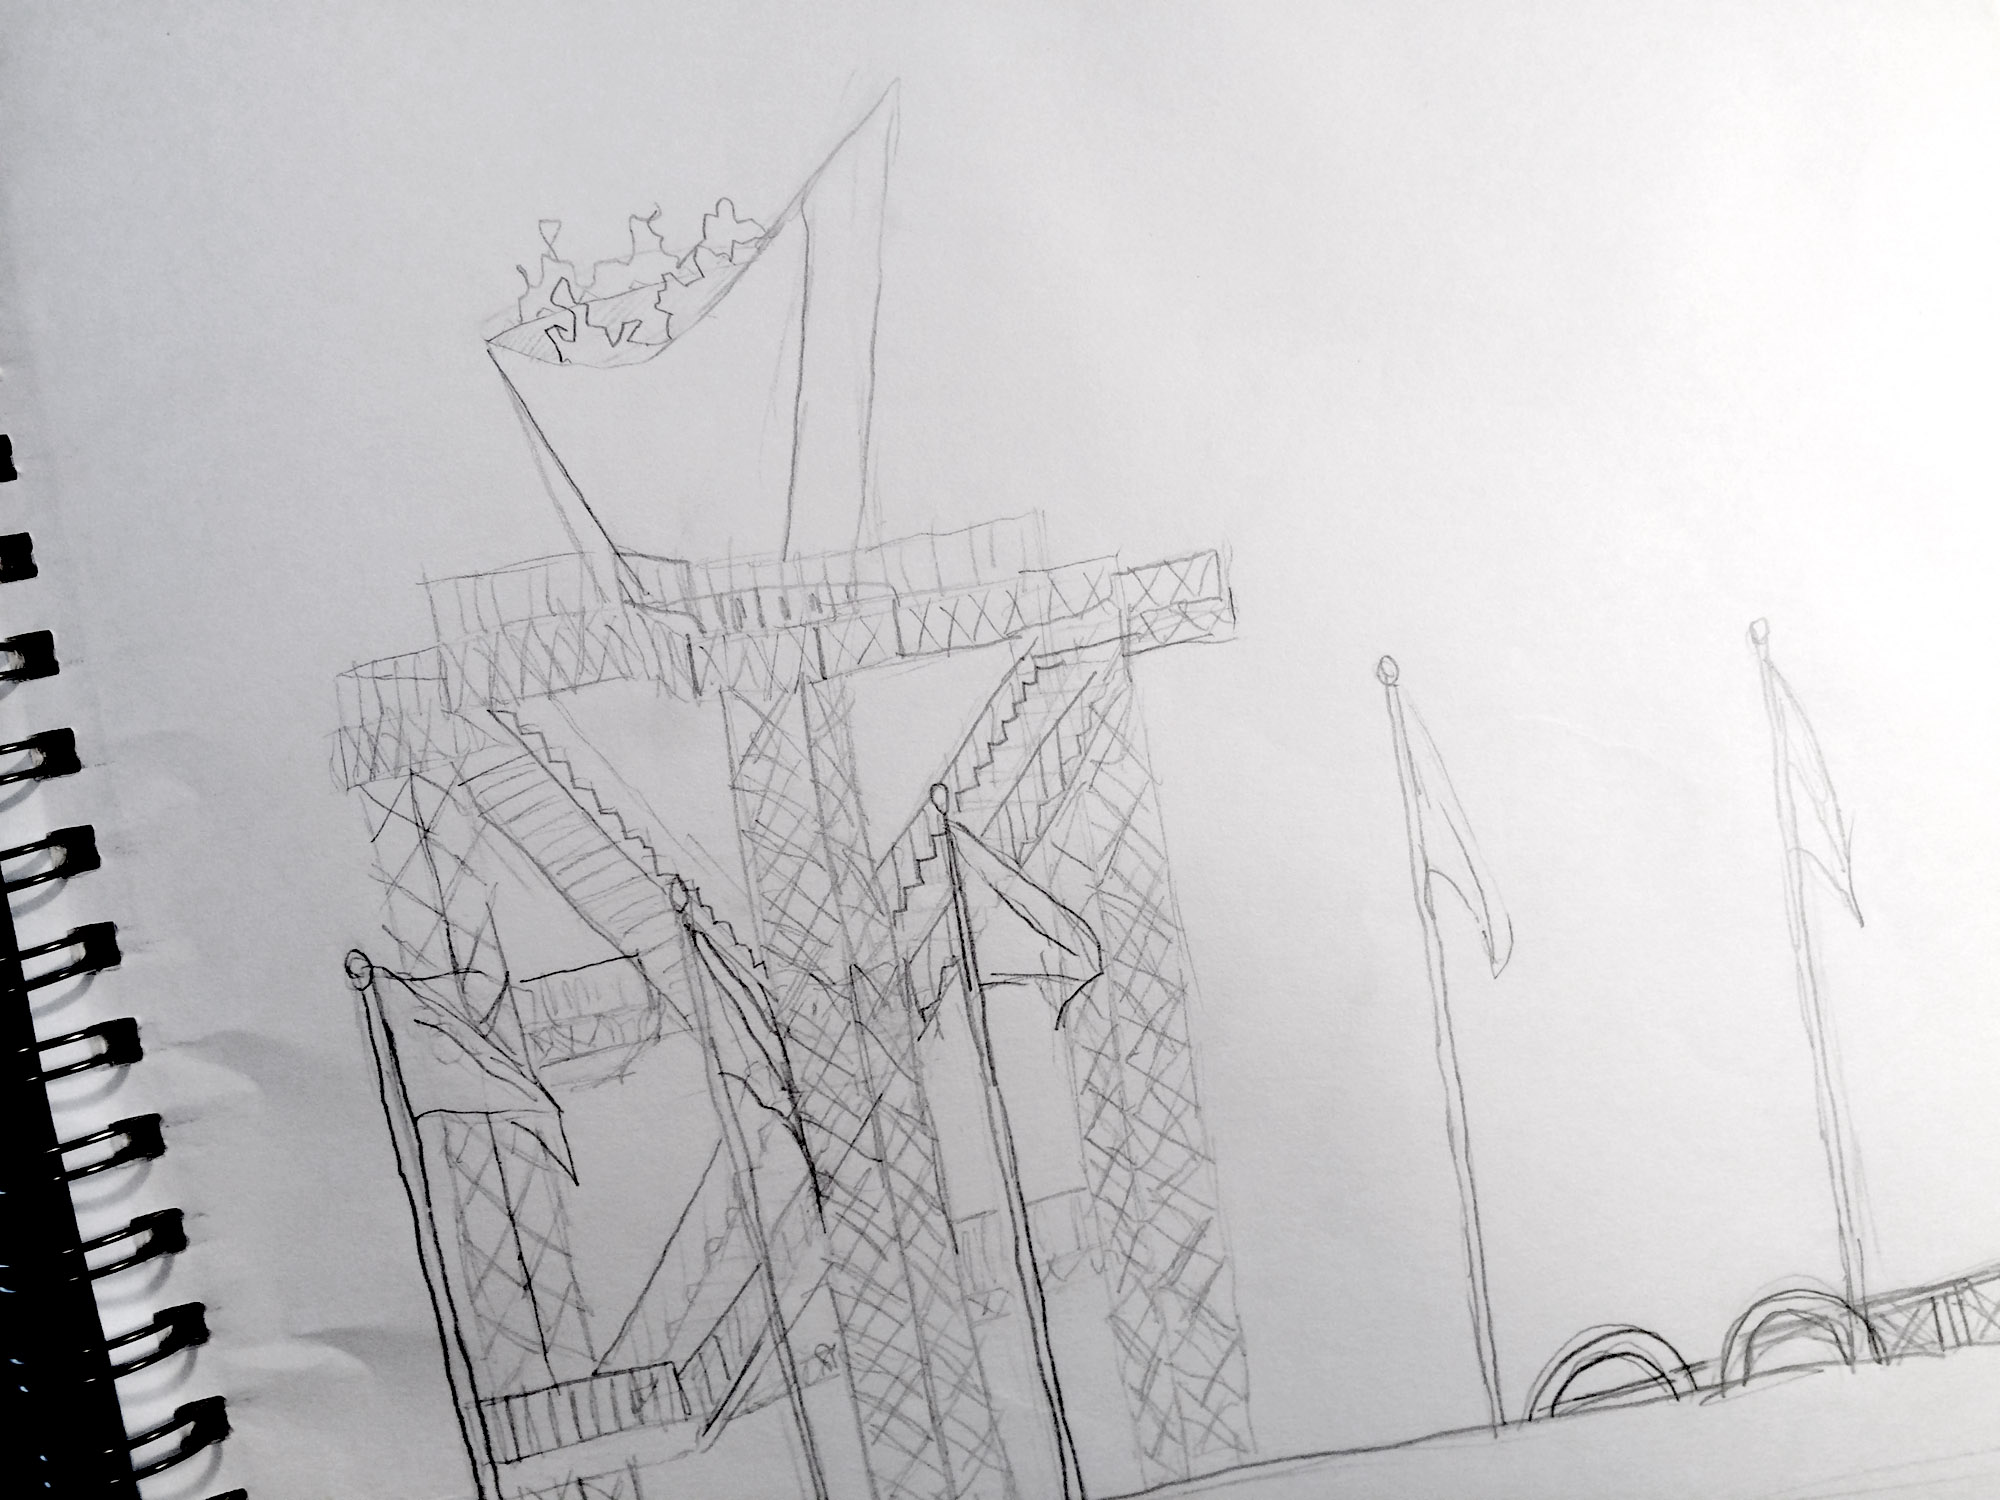 Raisch_Atlanta_Olympics-Sketch-1